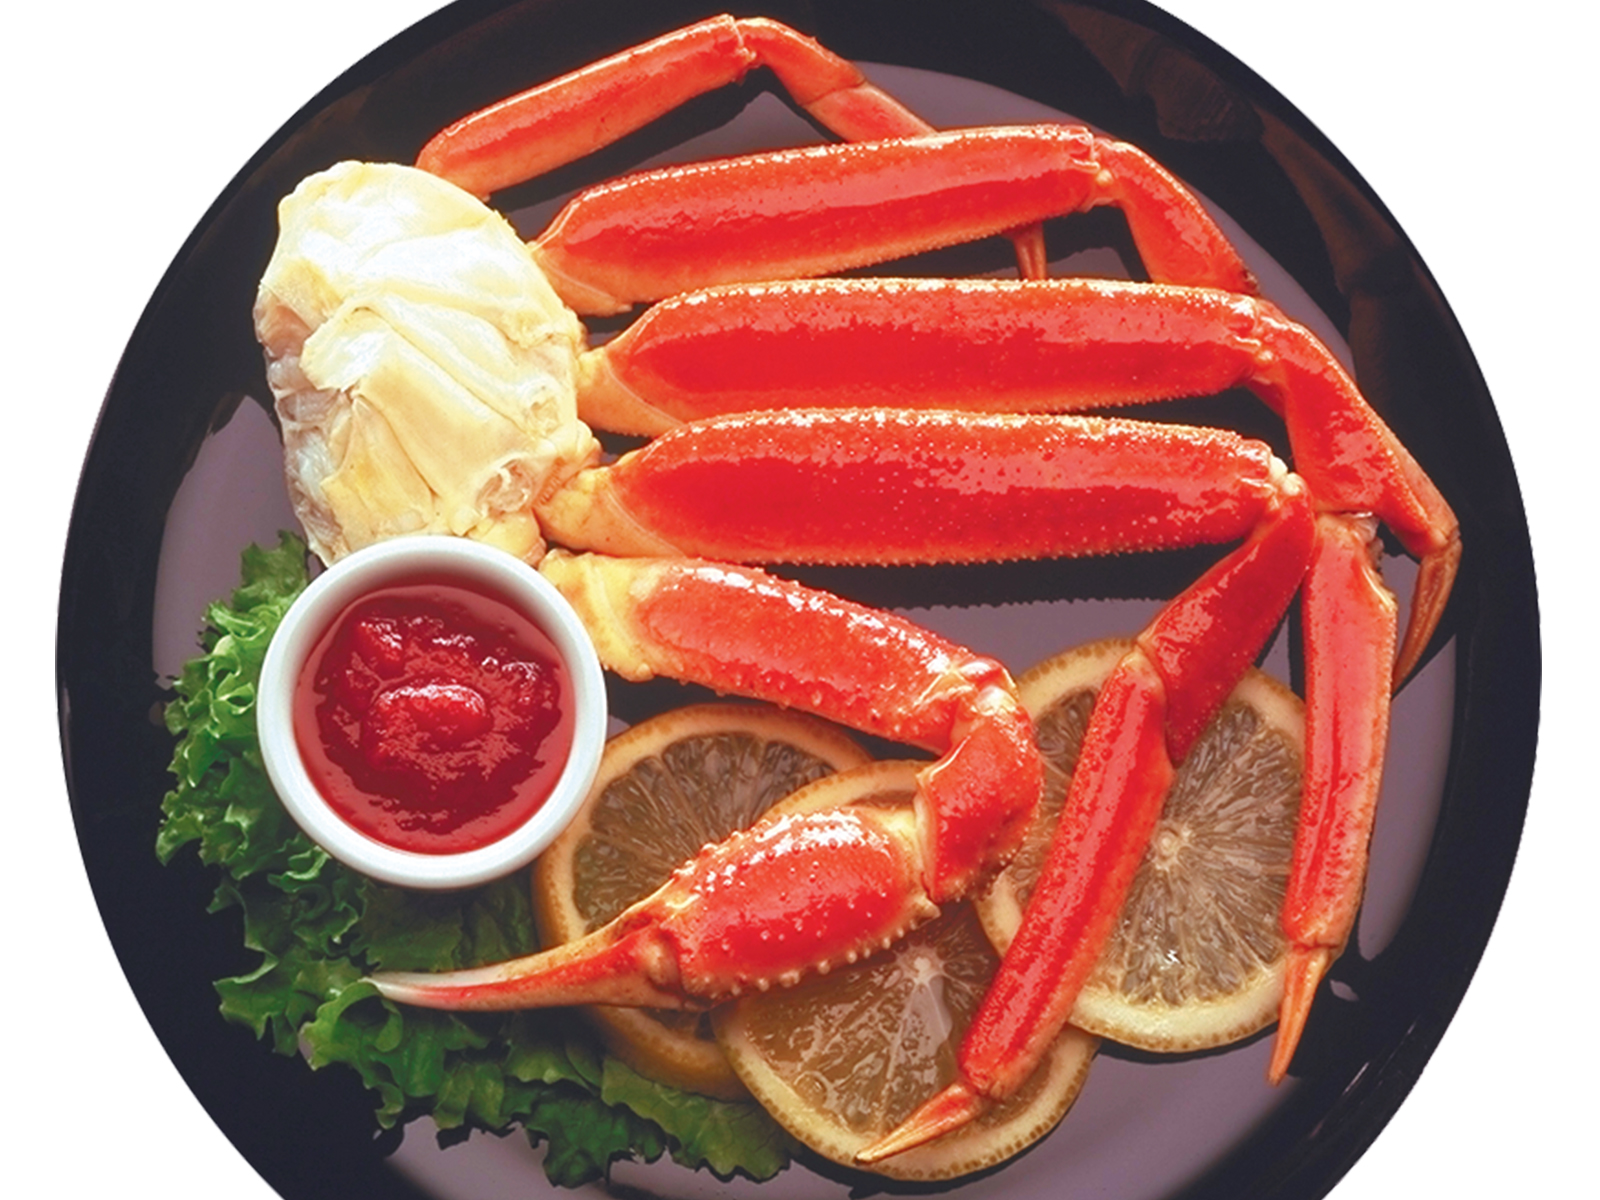 Snow Crab 5-8oz Sections A (1/45 lb) 410984